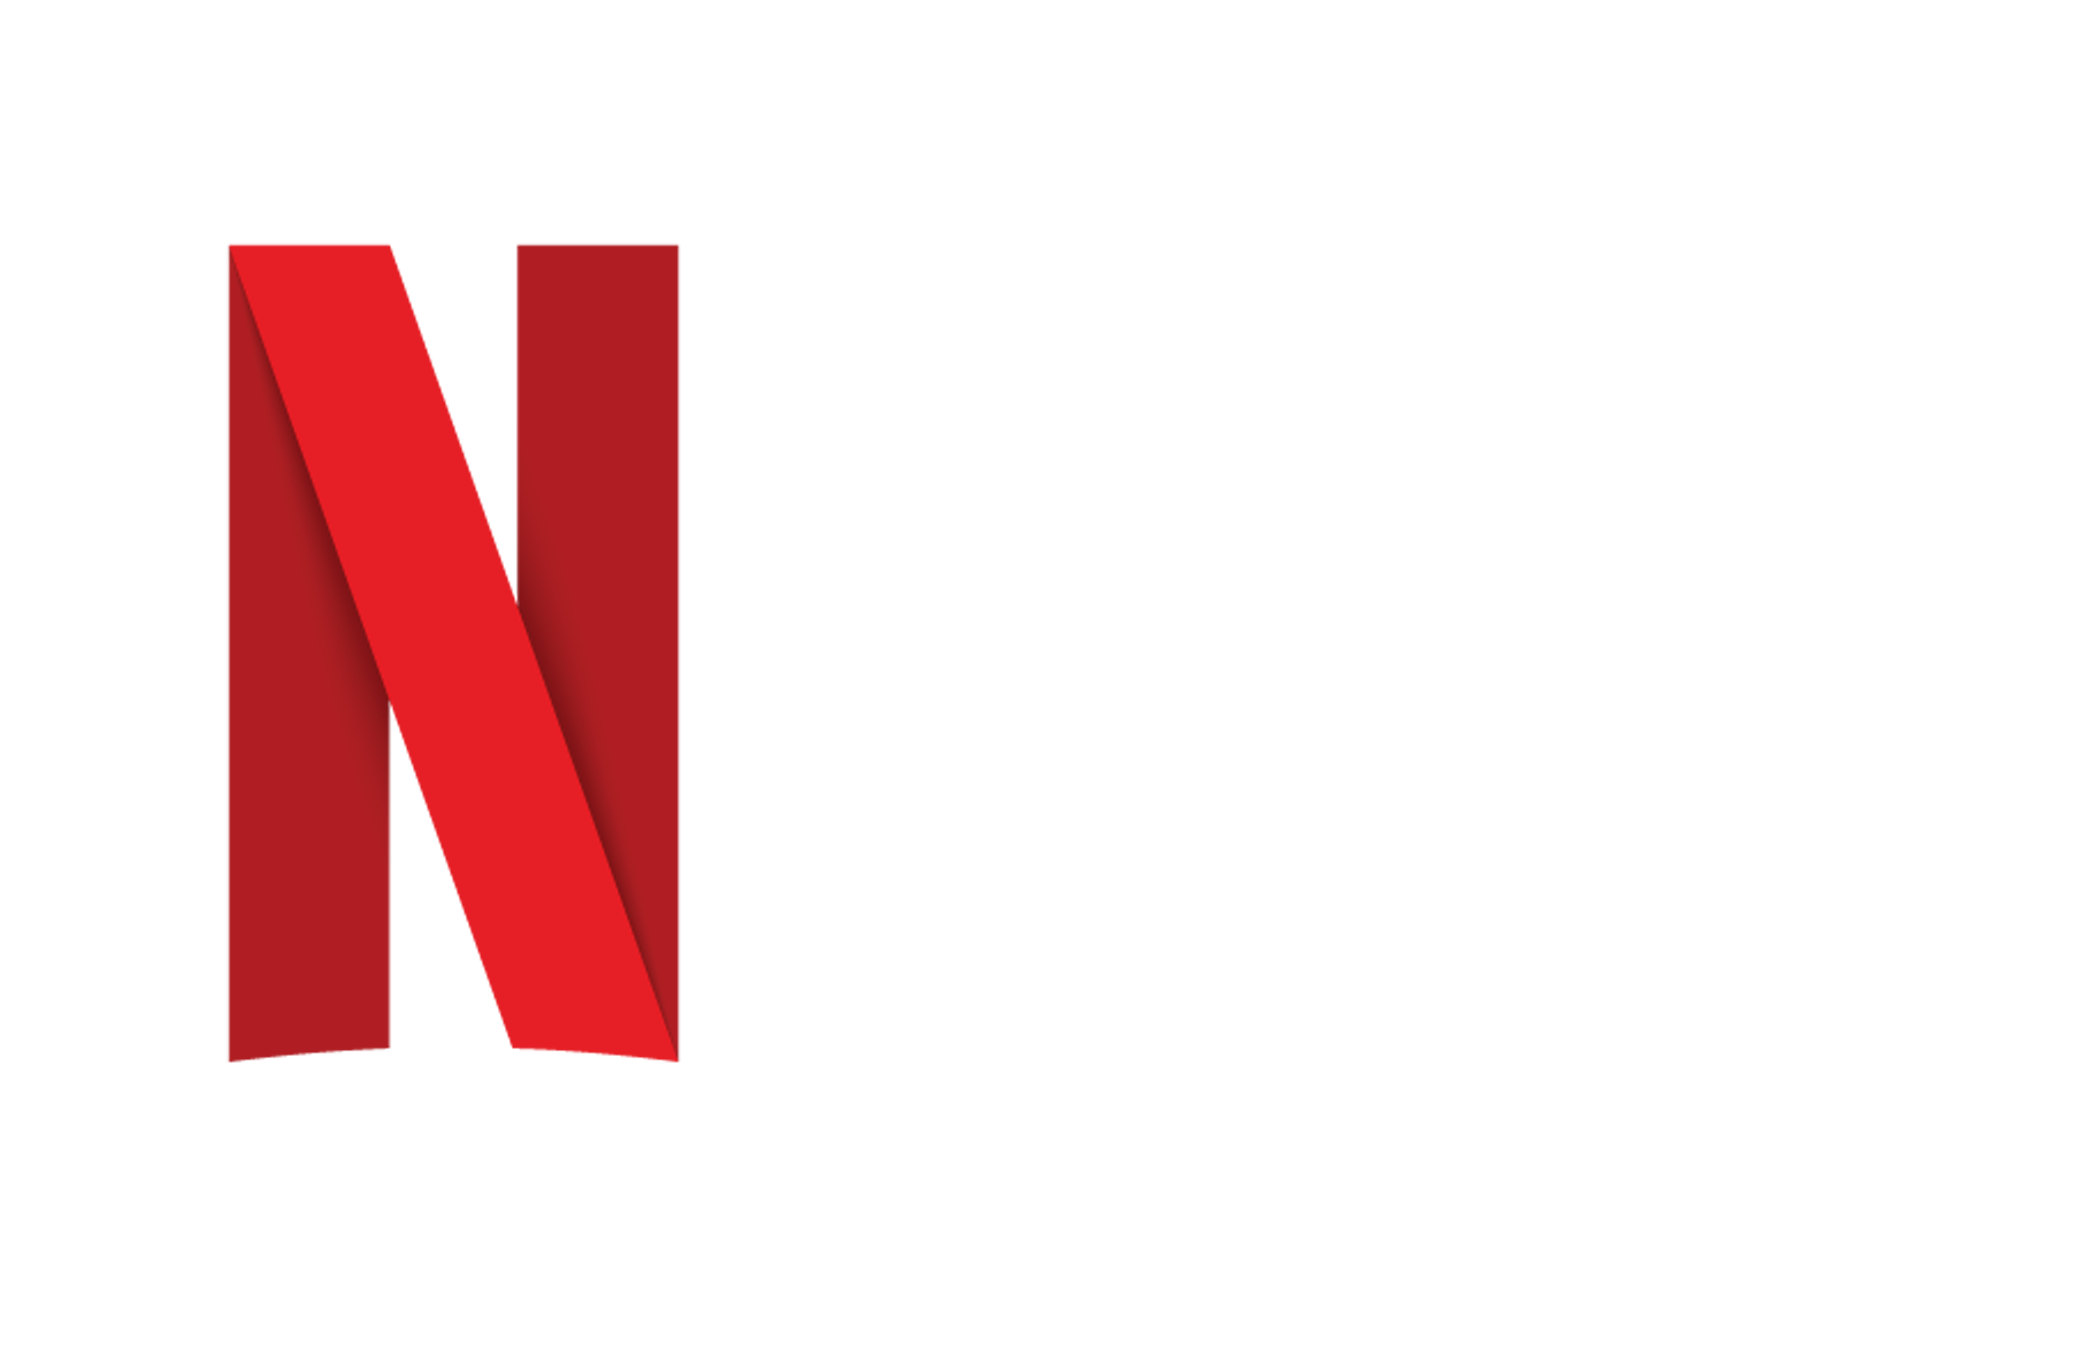 netflix png logo 10 free Cliparts  Download images on